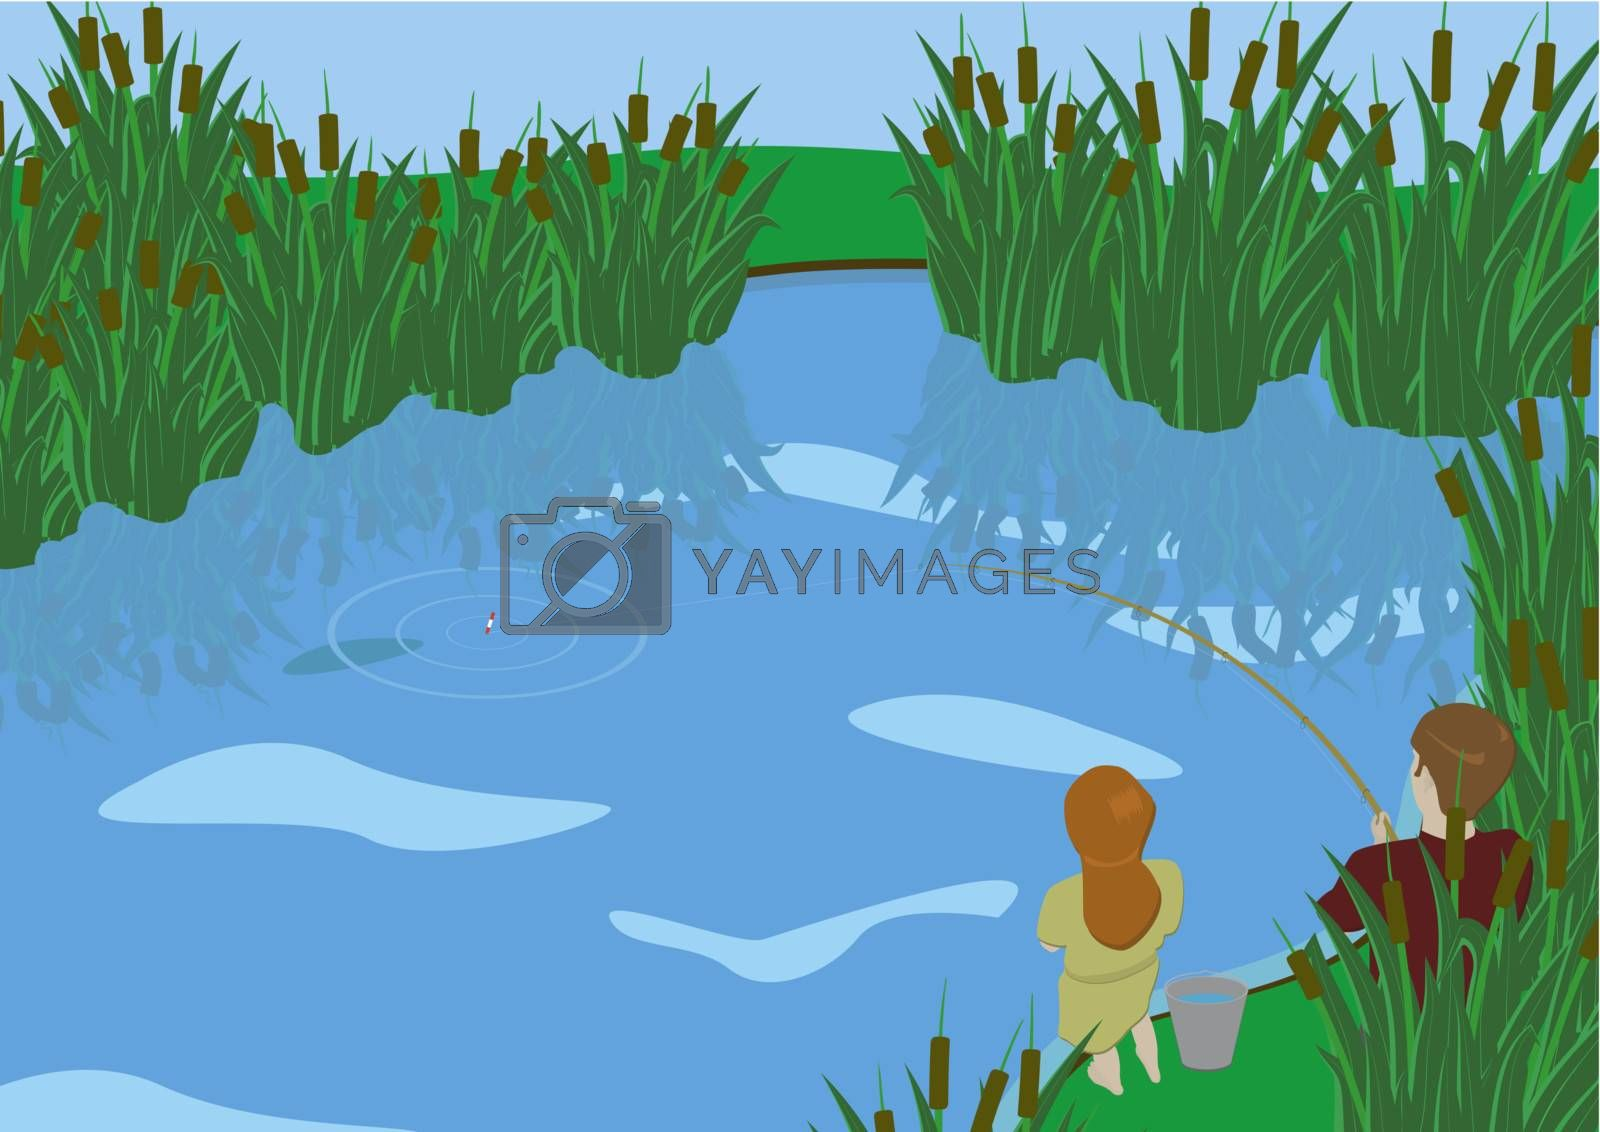 A young boy and girl fishing at the lake overgrown with reeds.